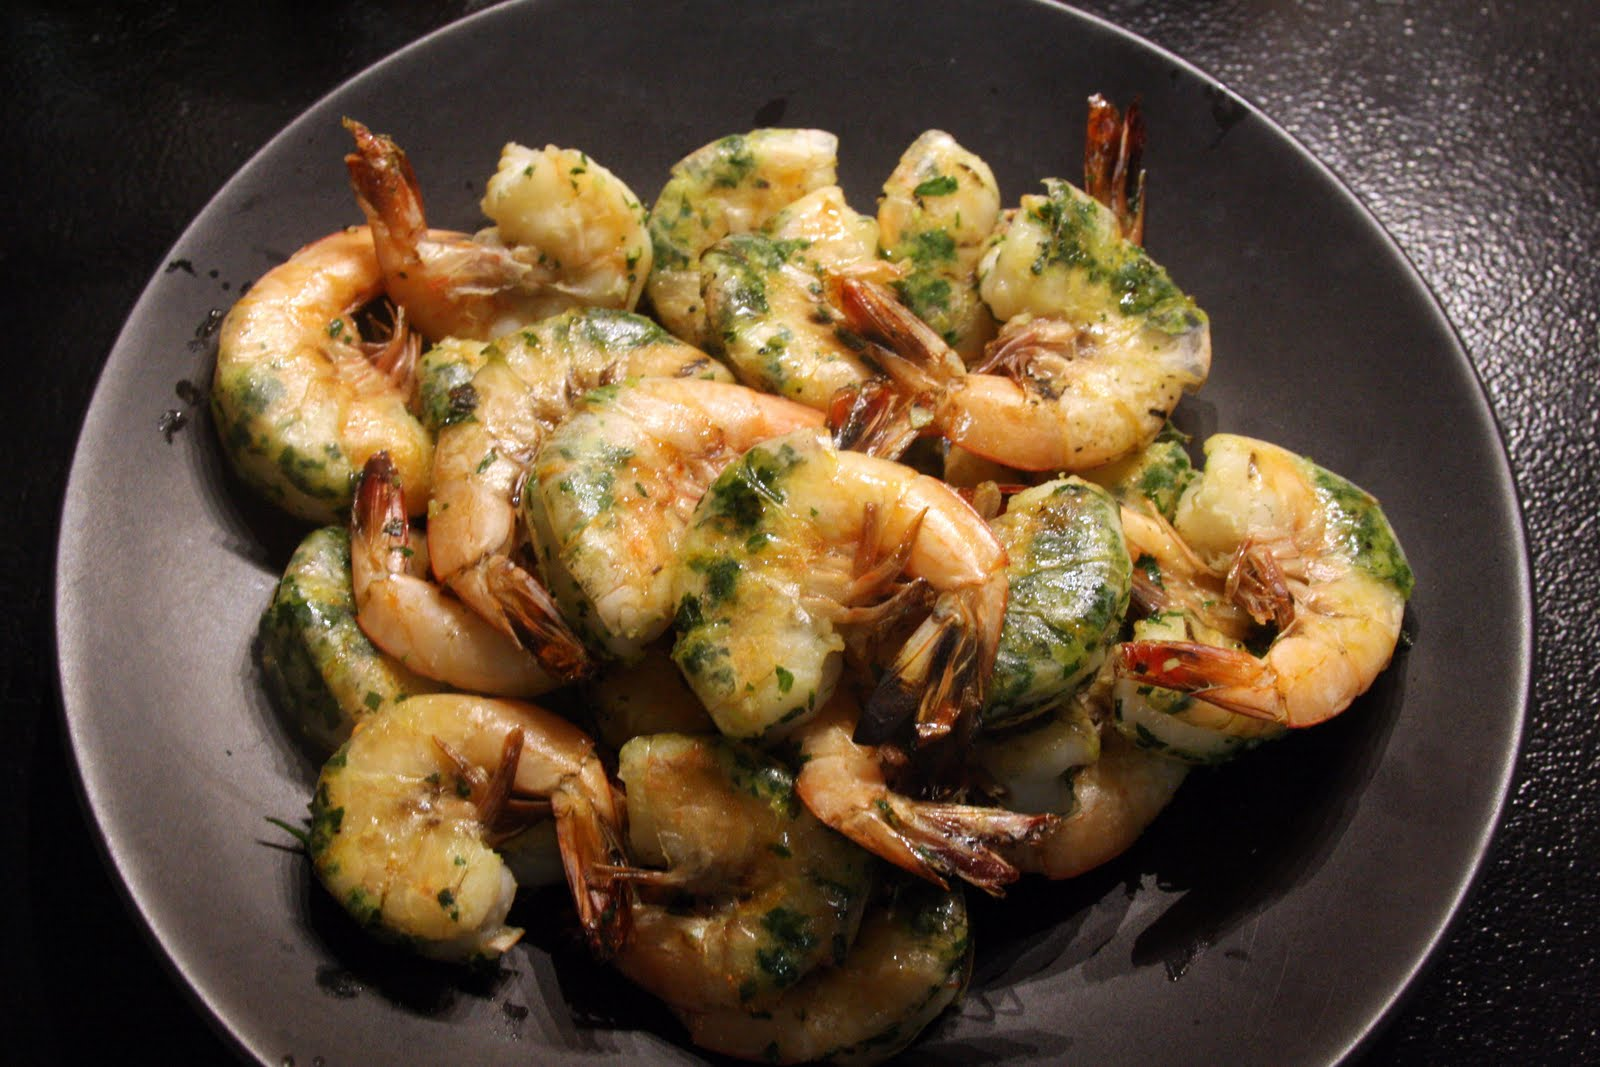 Food Wonk: Grilled Garlic Shrimp with Herbs